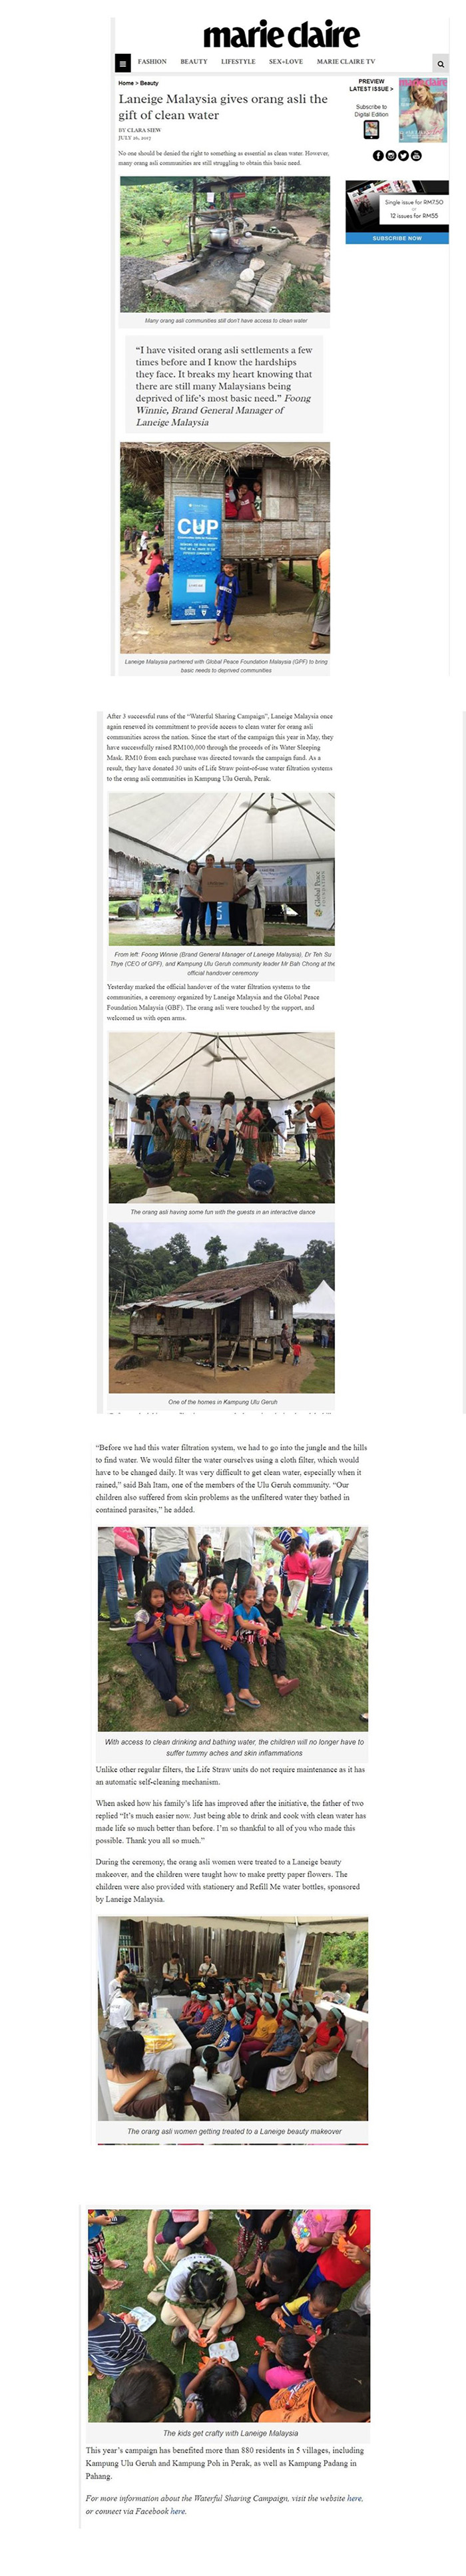 Laneige Malaysia gives orang asli the gift of clean water